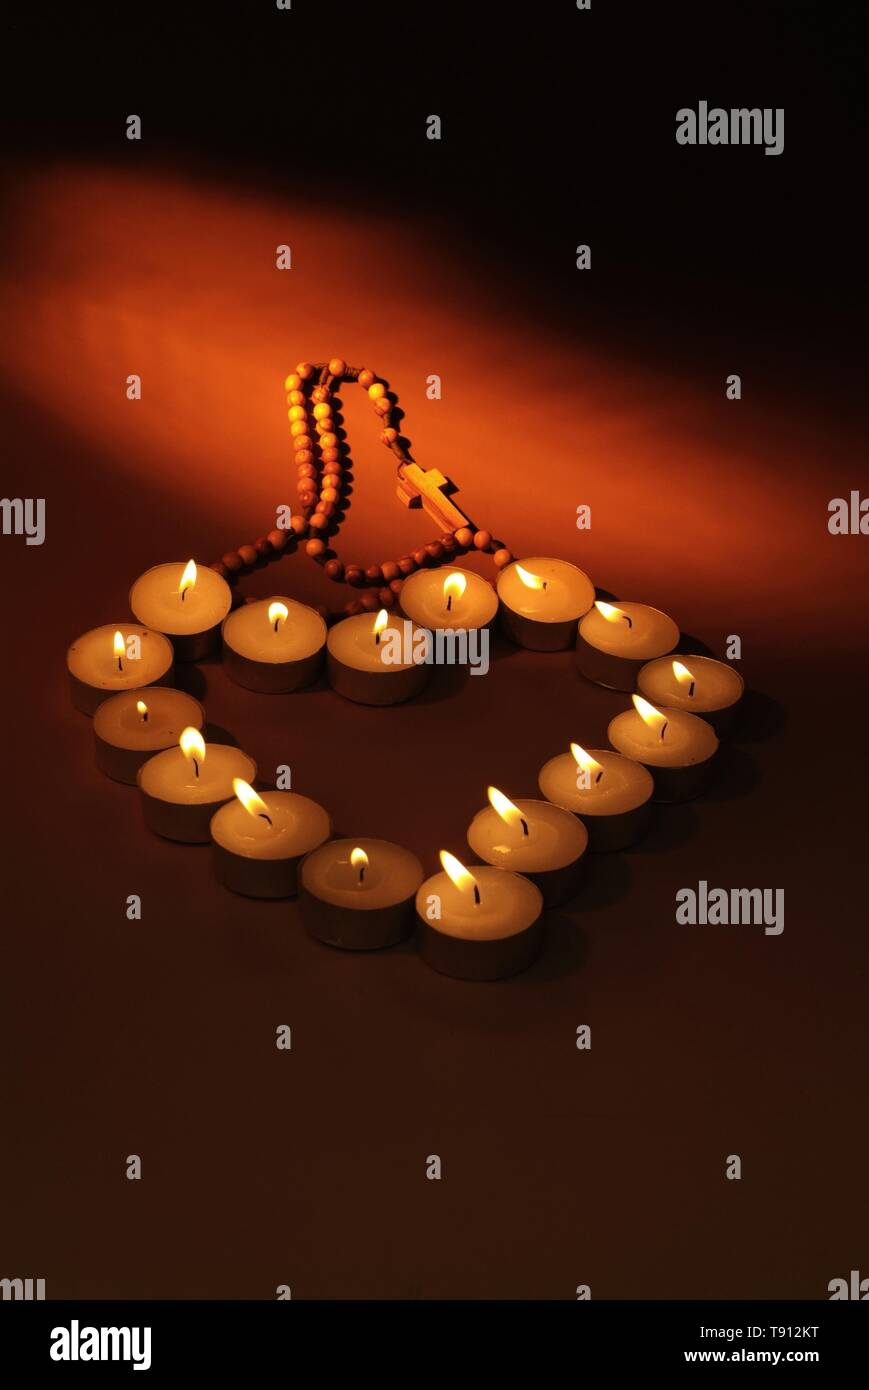 Heart made of candles on a black background. Symbol of love and faith made of burning red candles isolated - Stock Image